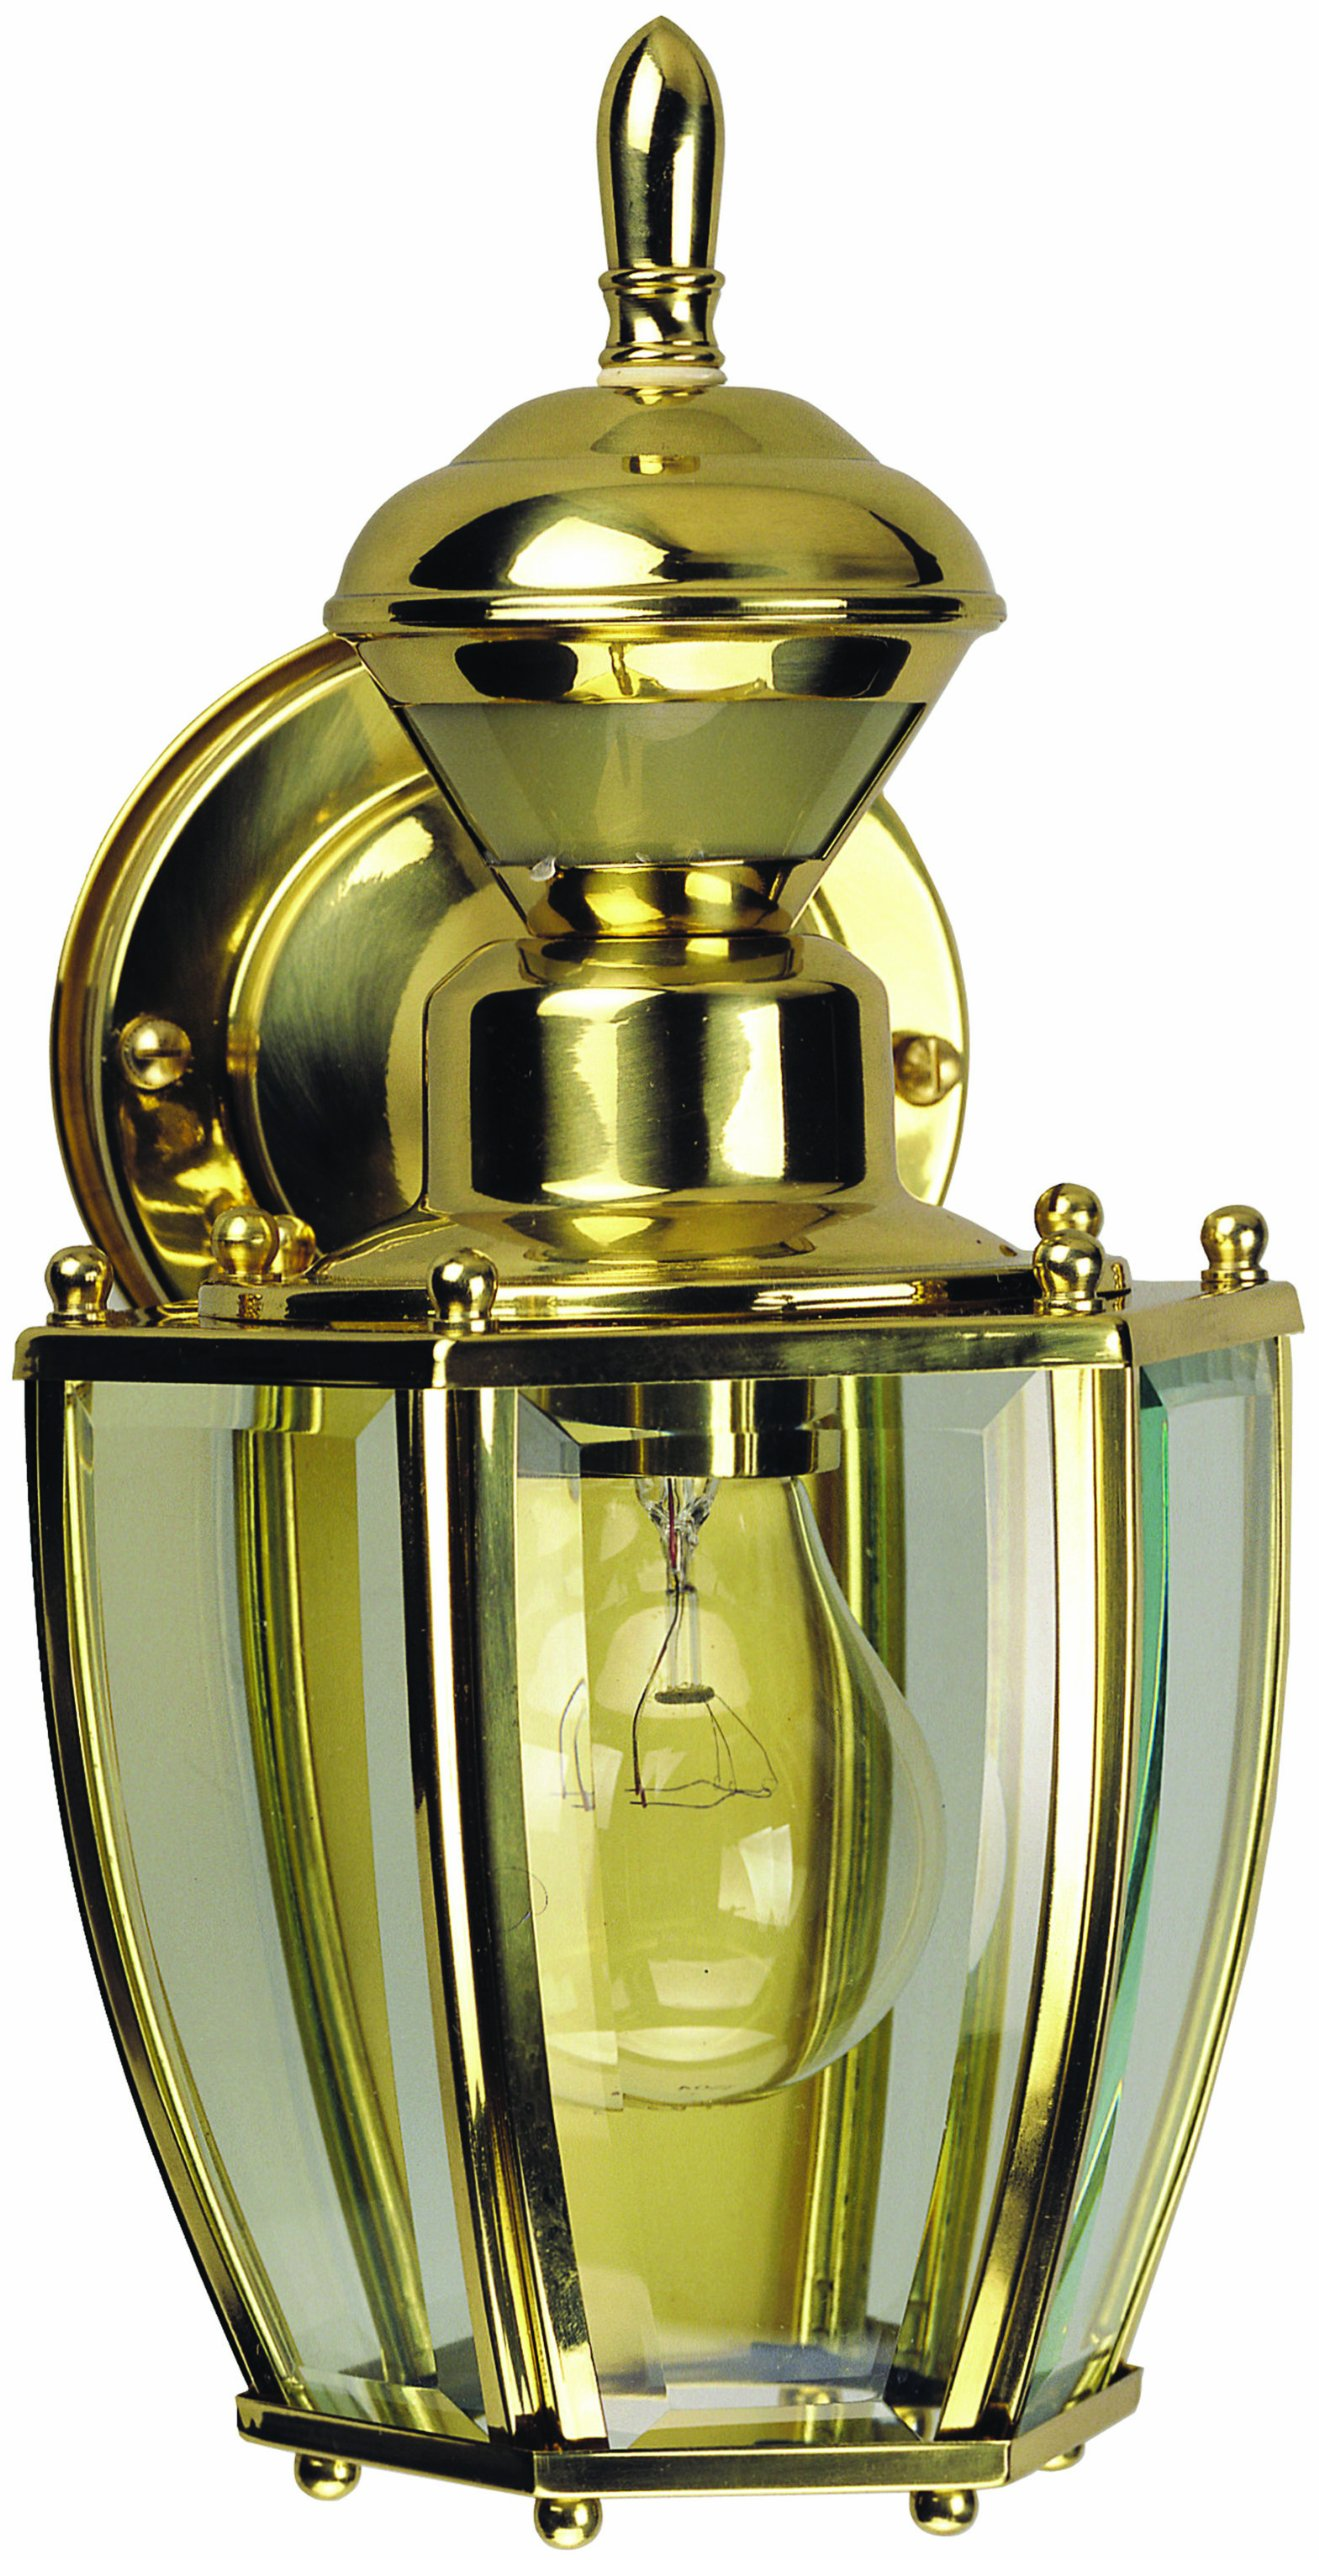 Heath Zenith HZ-4170-PB Motion-Activated Six-Sided Carriage Light, Polished Brass with Beveled Glass